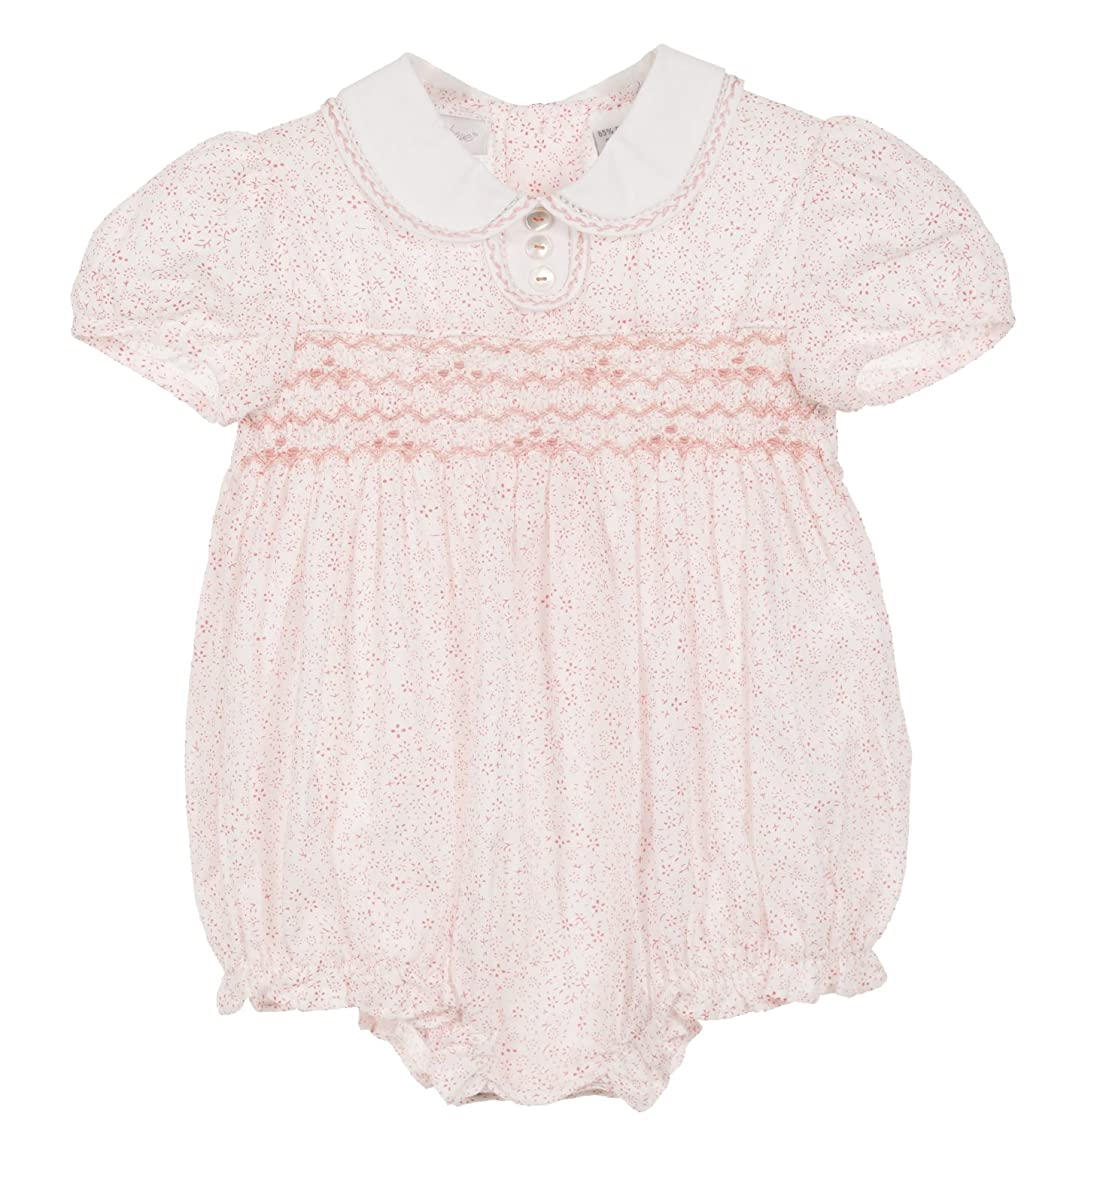 Baby Girl Bubble Pink Ditsy Flower Print Hand Smocking with Collar